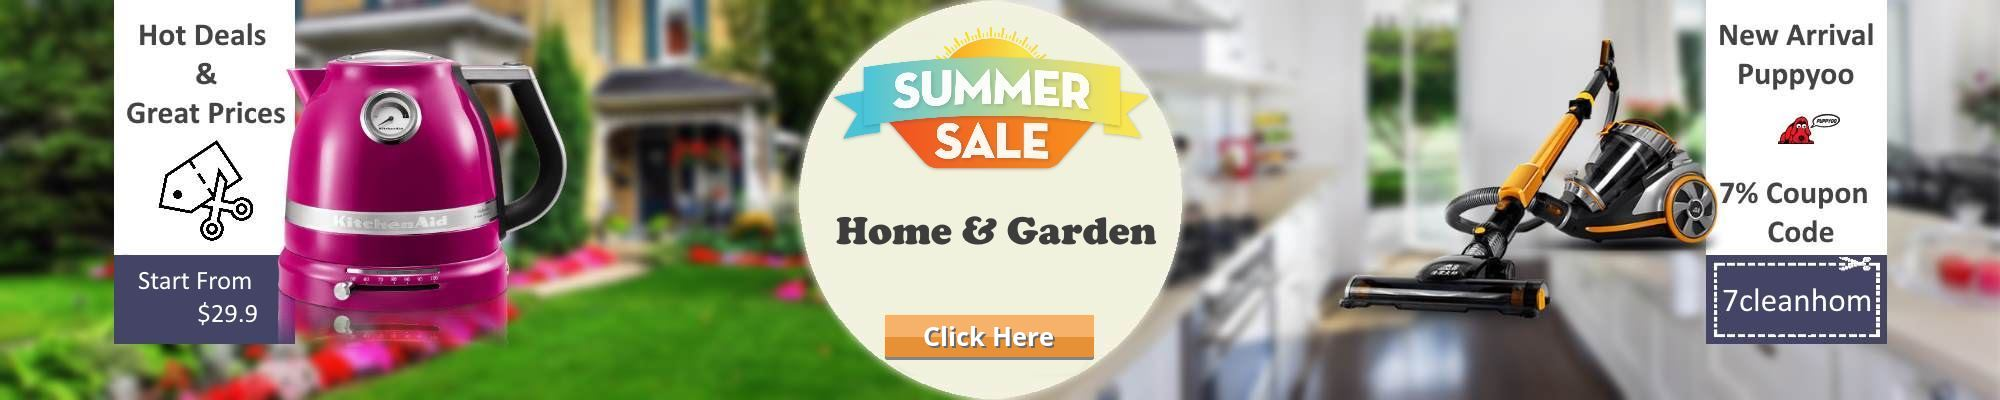 deals at home and garden